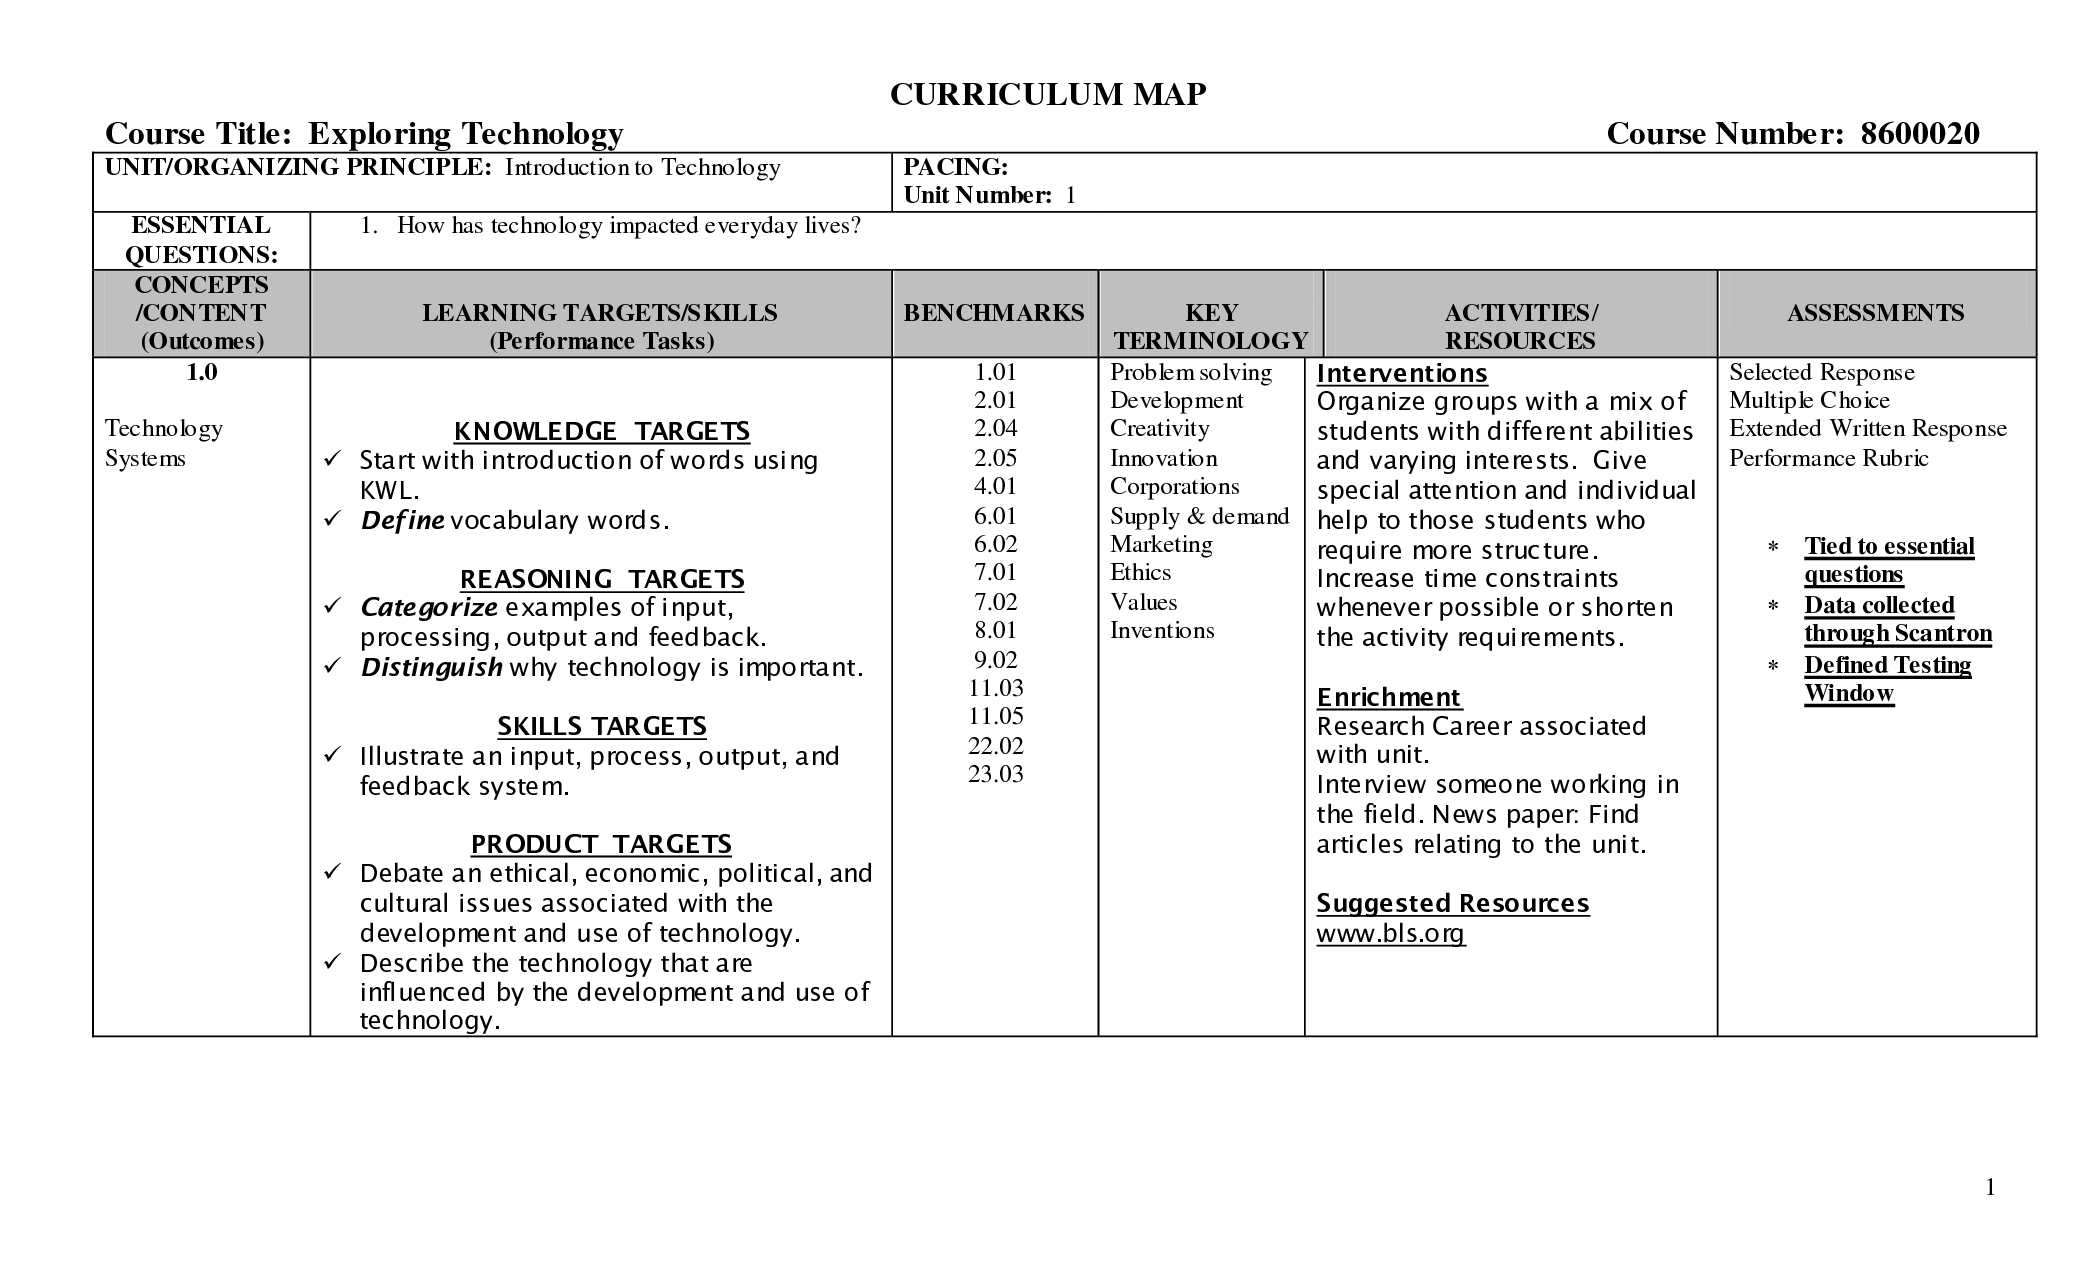 Blank Curriculum Map Template | Curriculum map template This is ...